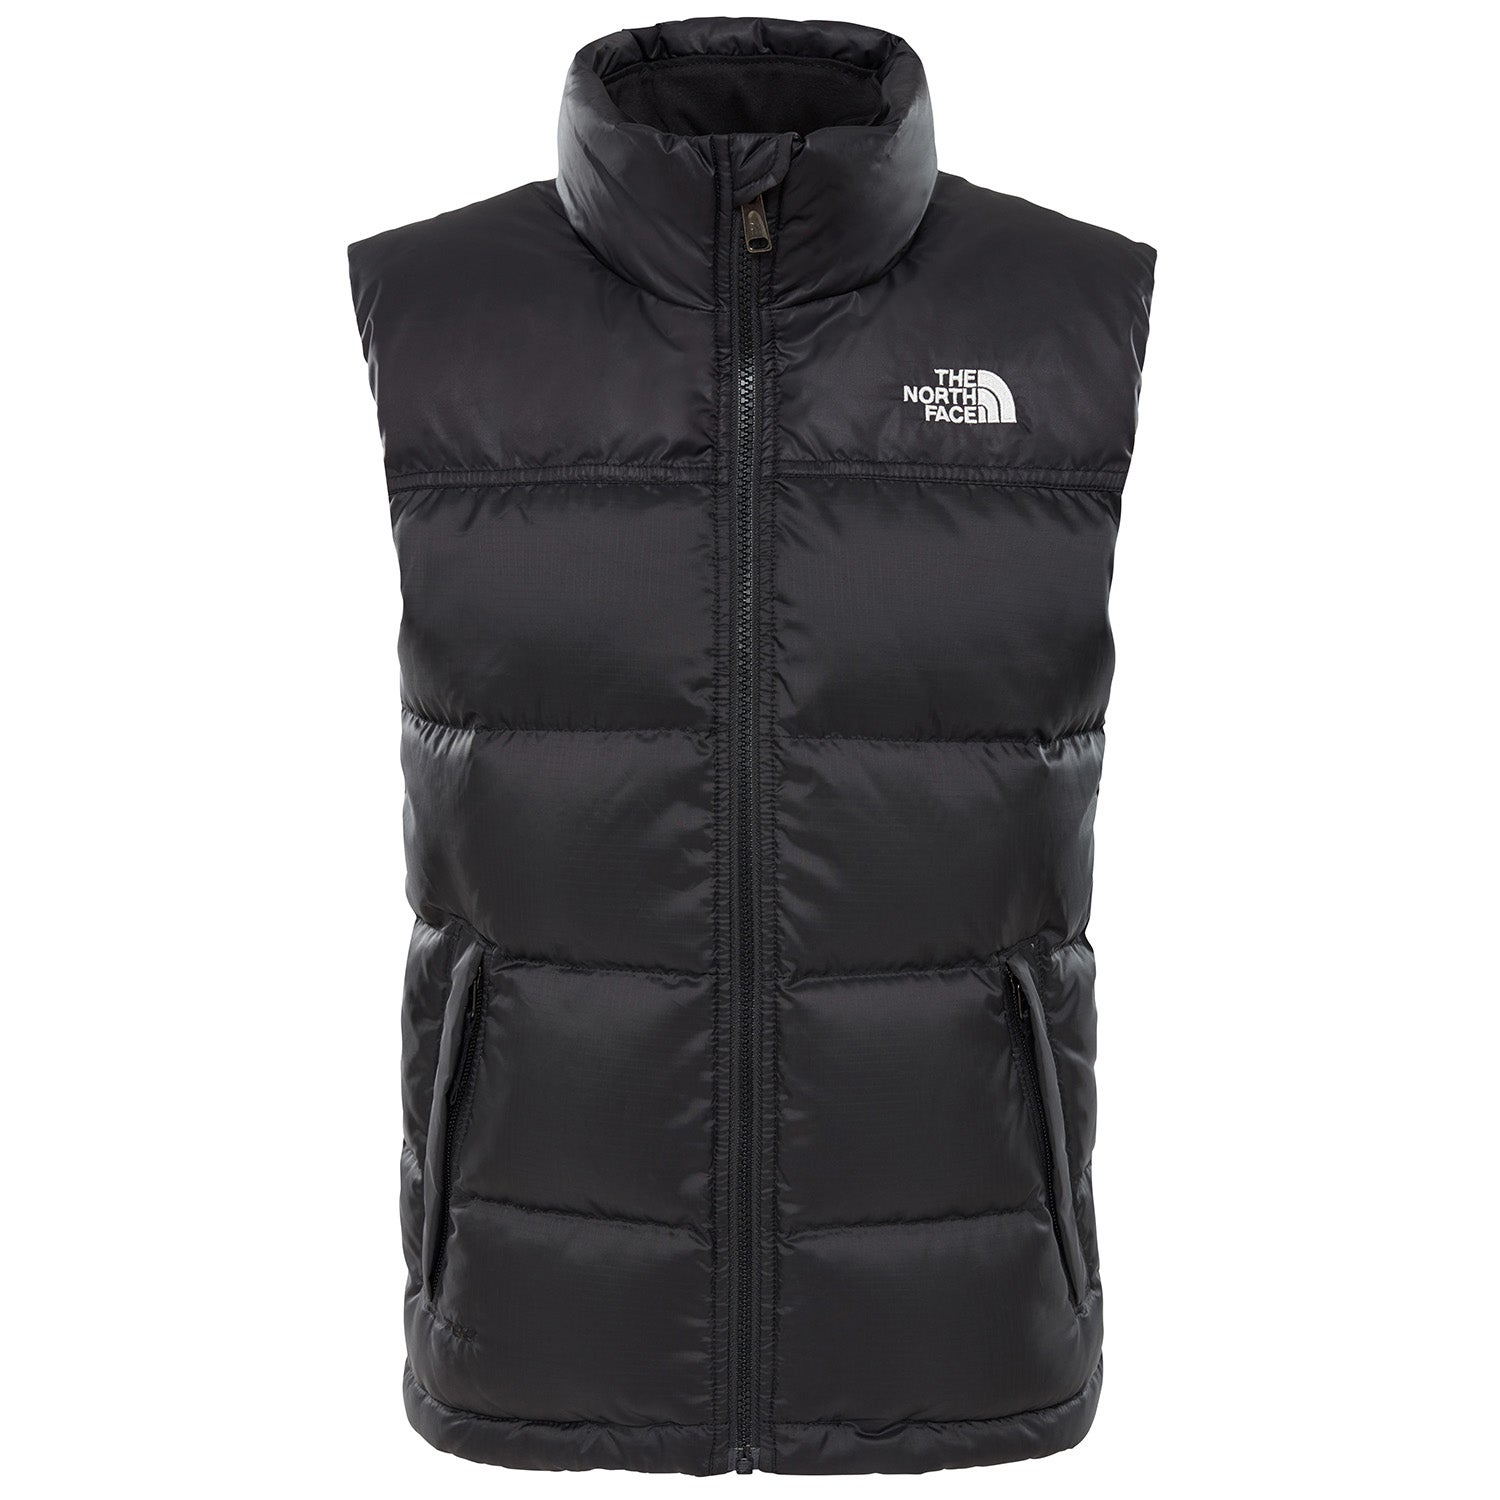 c034118b4 Details about The North Face Nuptse Down Kids Jacket Gilet - Tnf Black All  Sizes